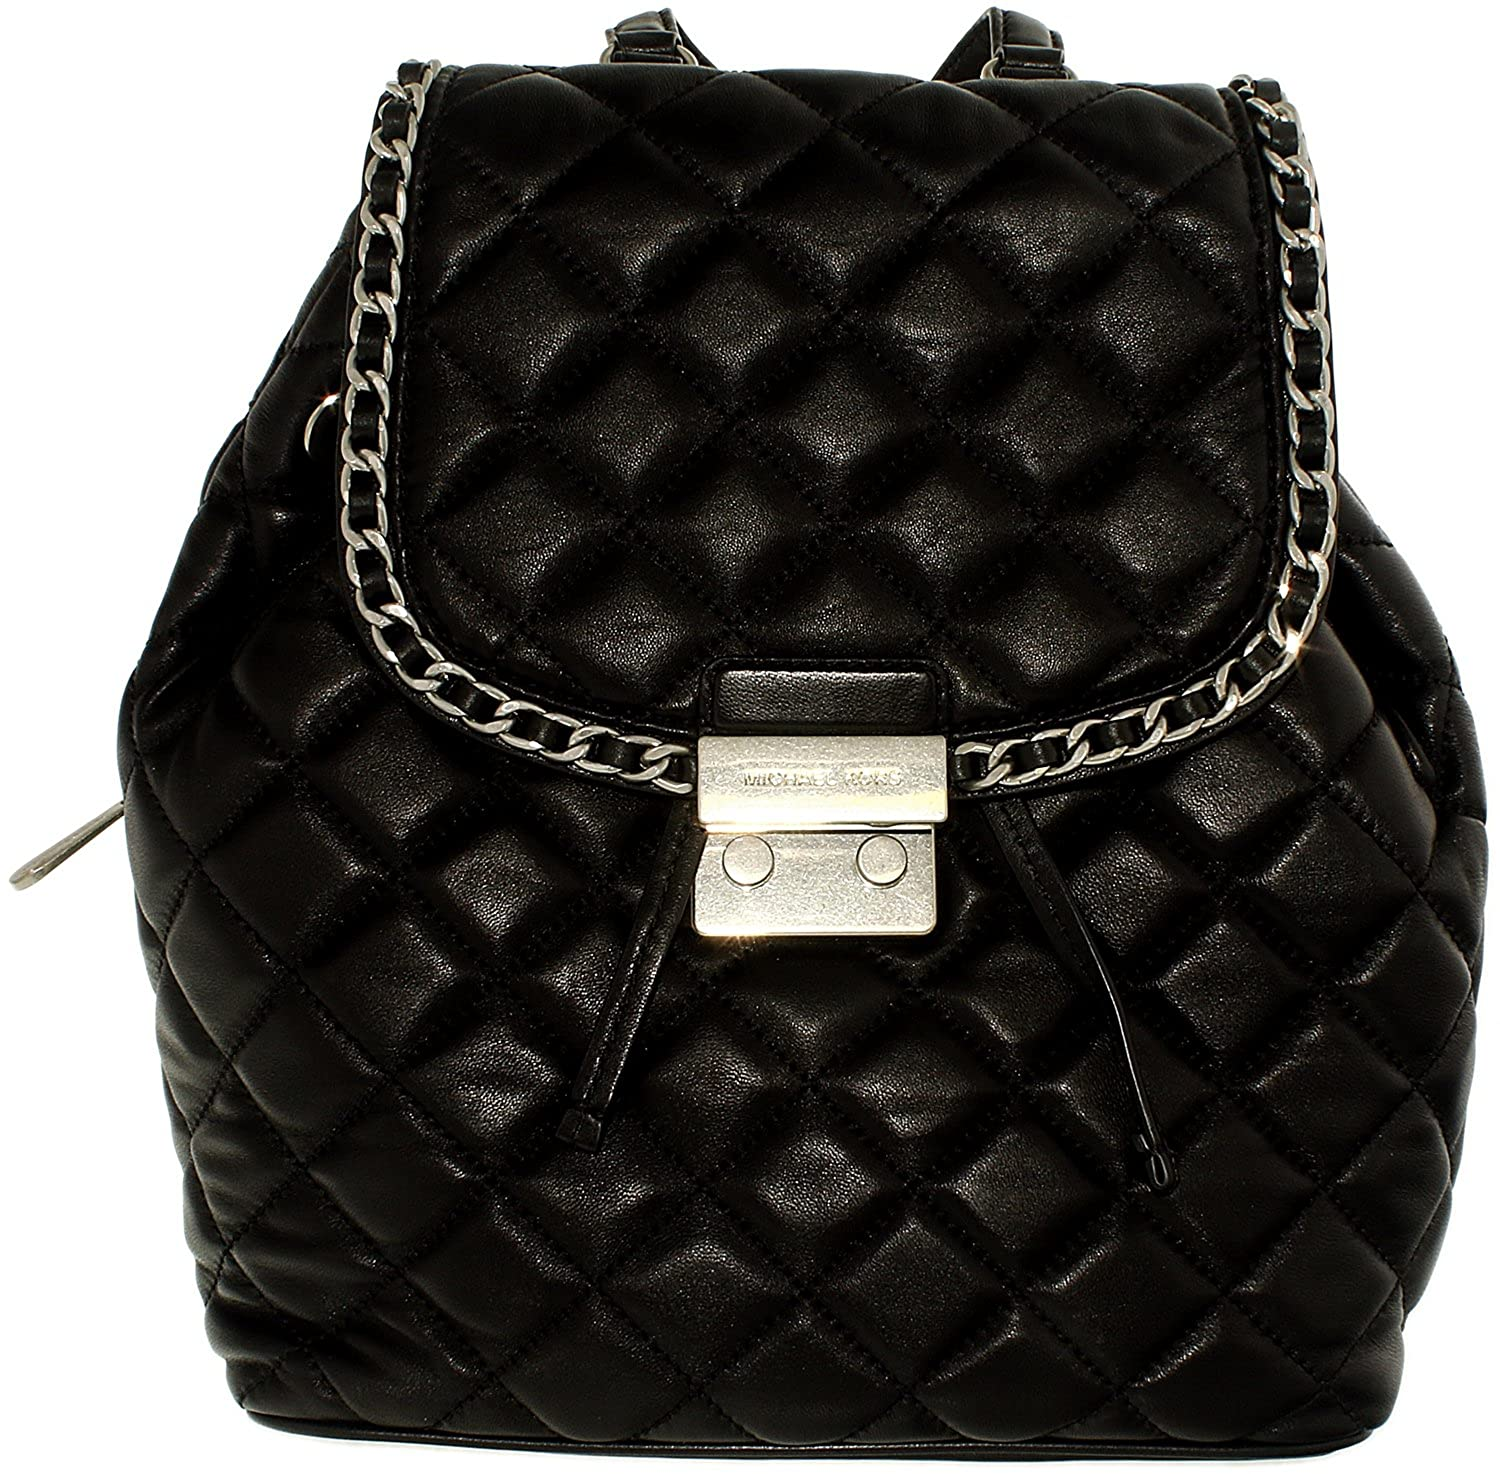 Amazon.com: Michael Kors Carine Medium Quilted-Leather Backpack ... : leather quilted backpack - Adamdwight.com